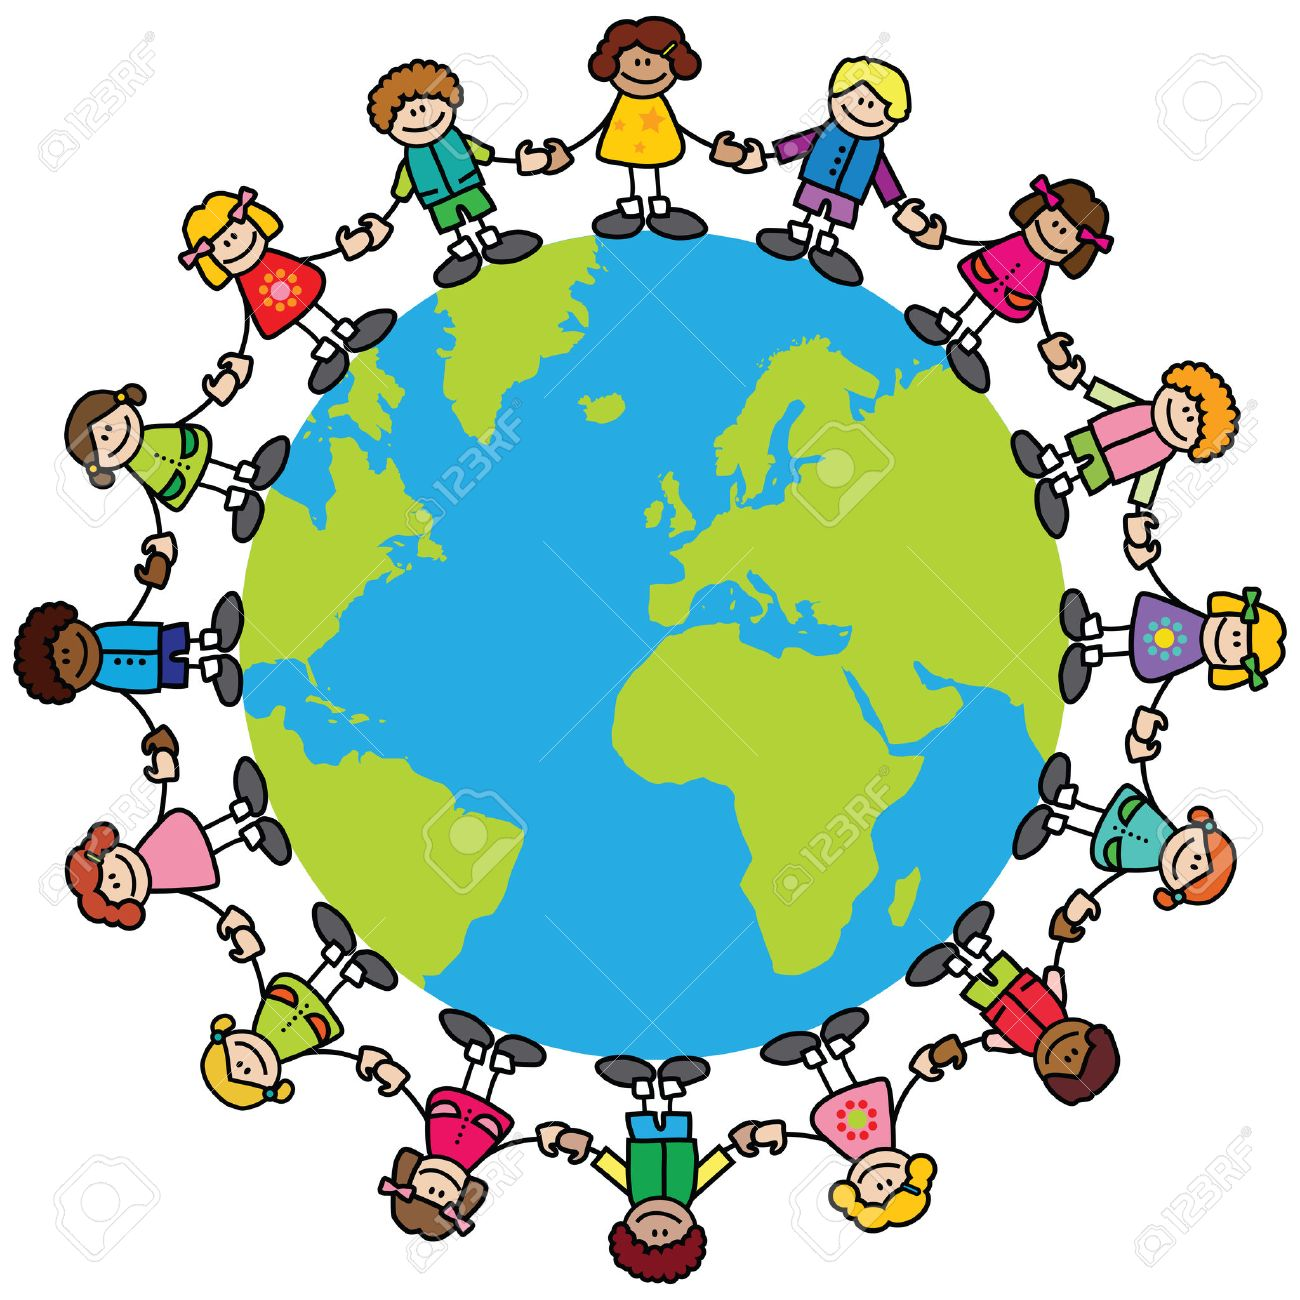 Children around the world clipart 4 » Clipart Station.